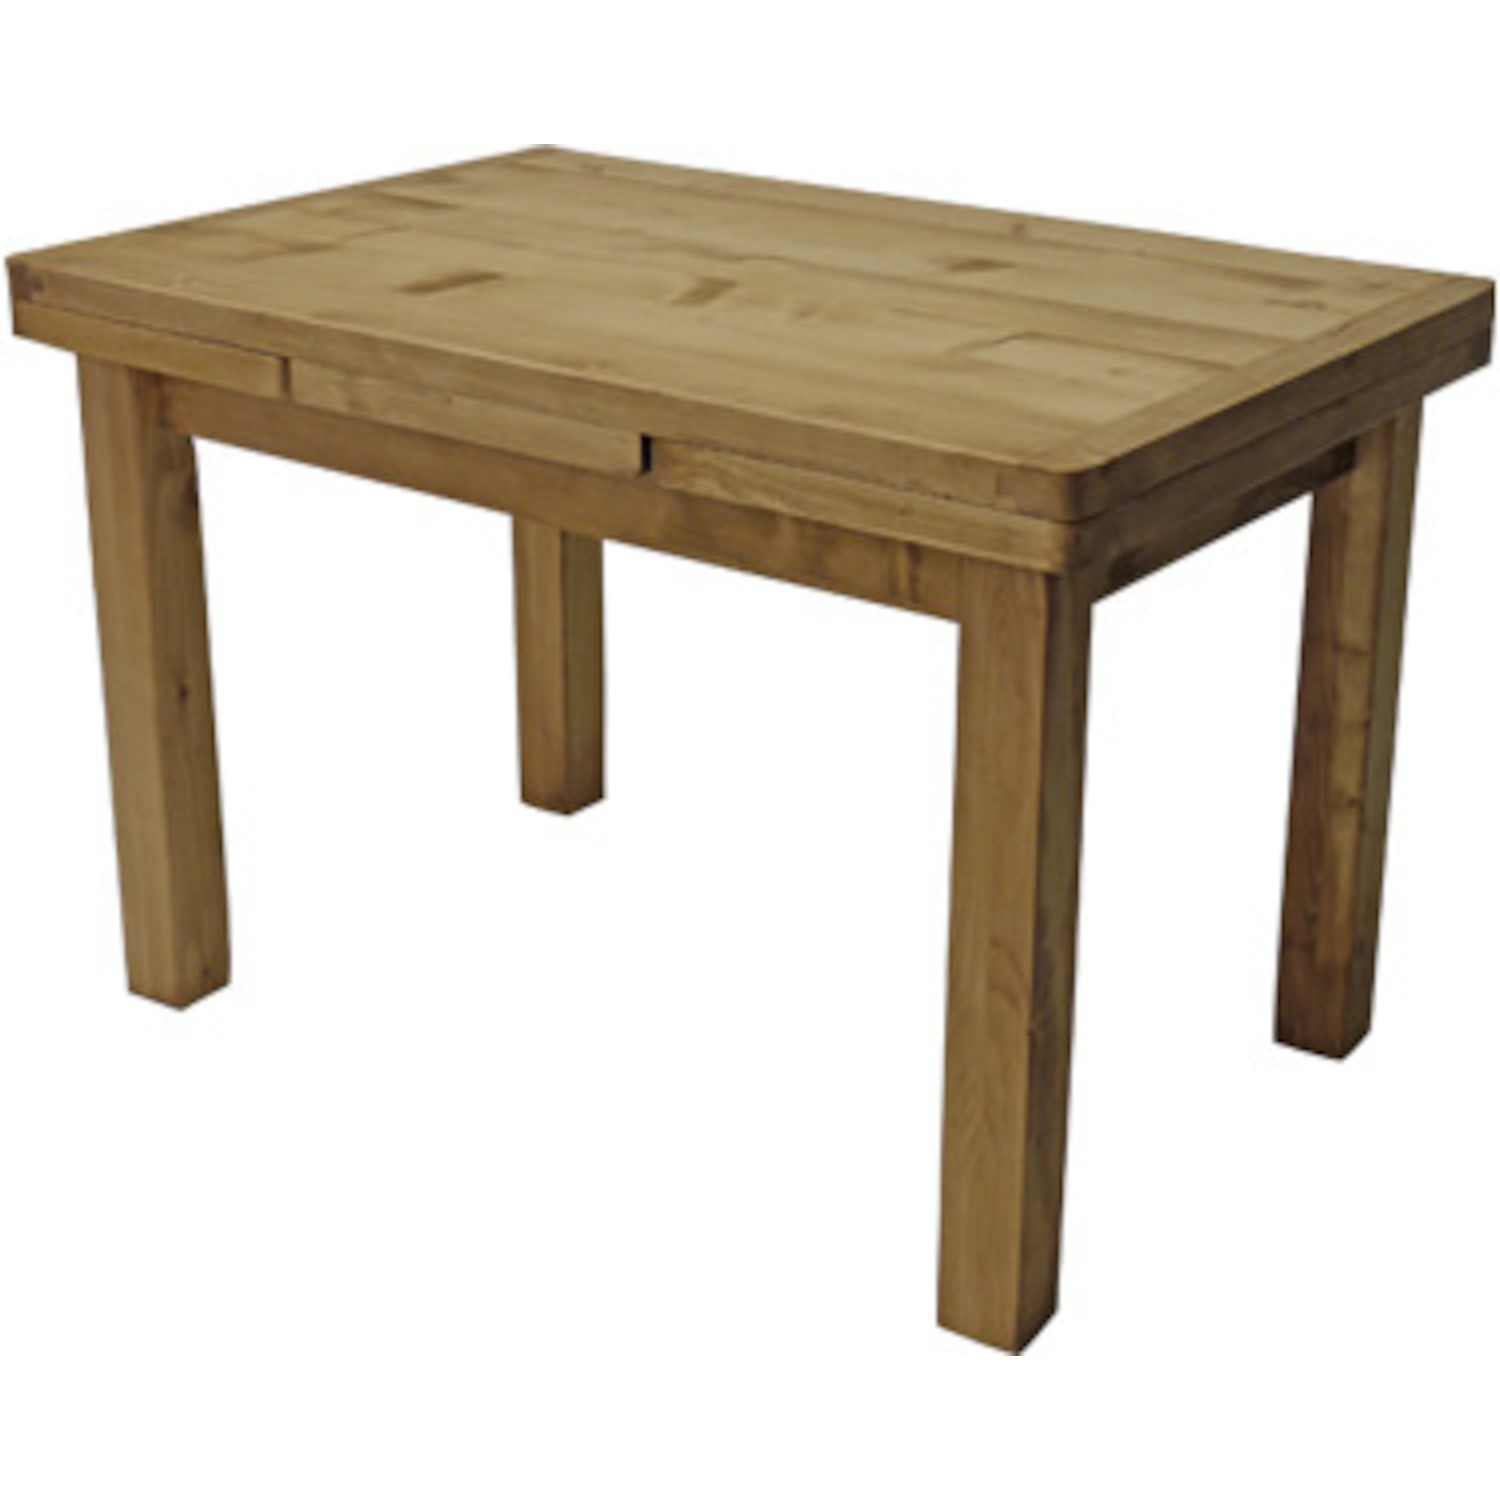 Table avec 2 allonges l italienne - Table sejour avec rallonge ...